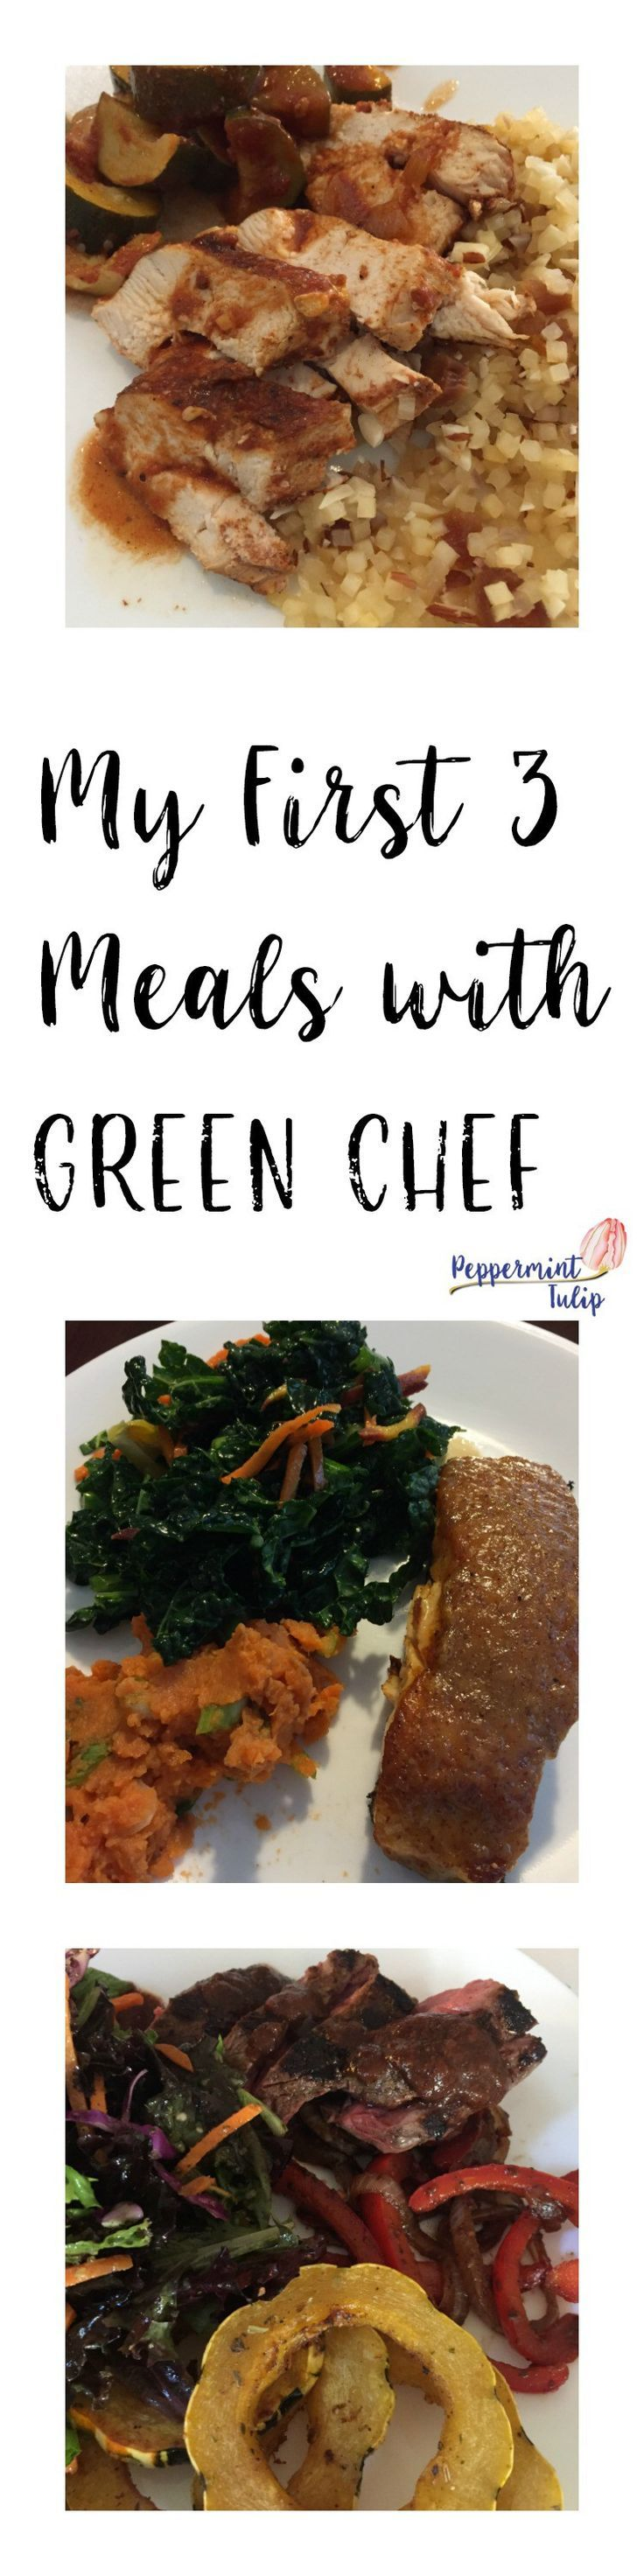 My first three meals with green chef green chef meal delivery three delicious organic paleo meals with green chef an organic meal delivery service forumfinder Image collections